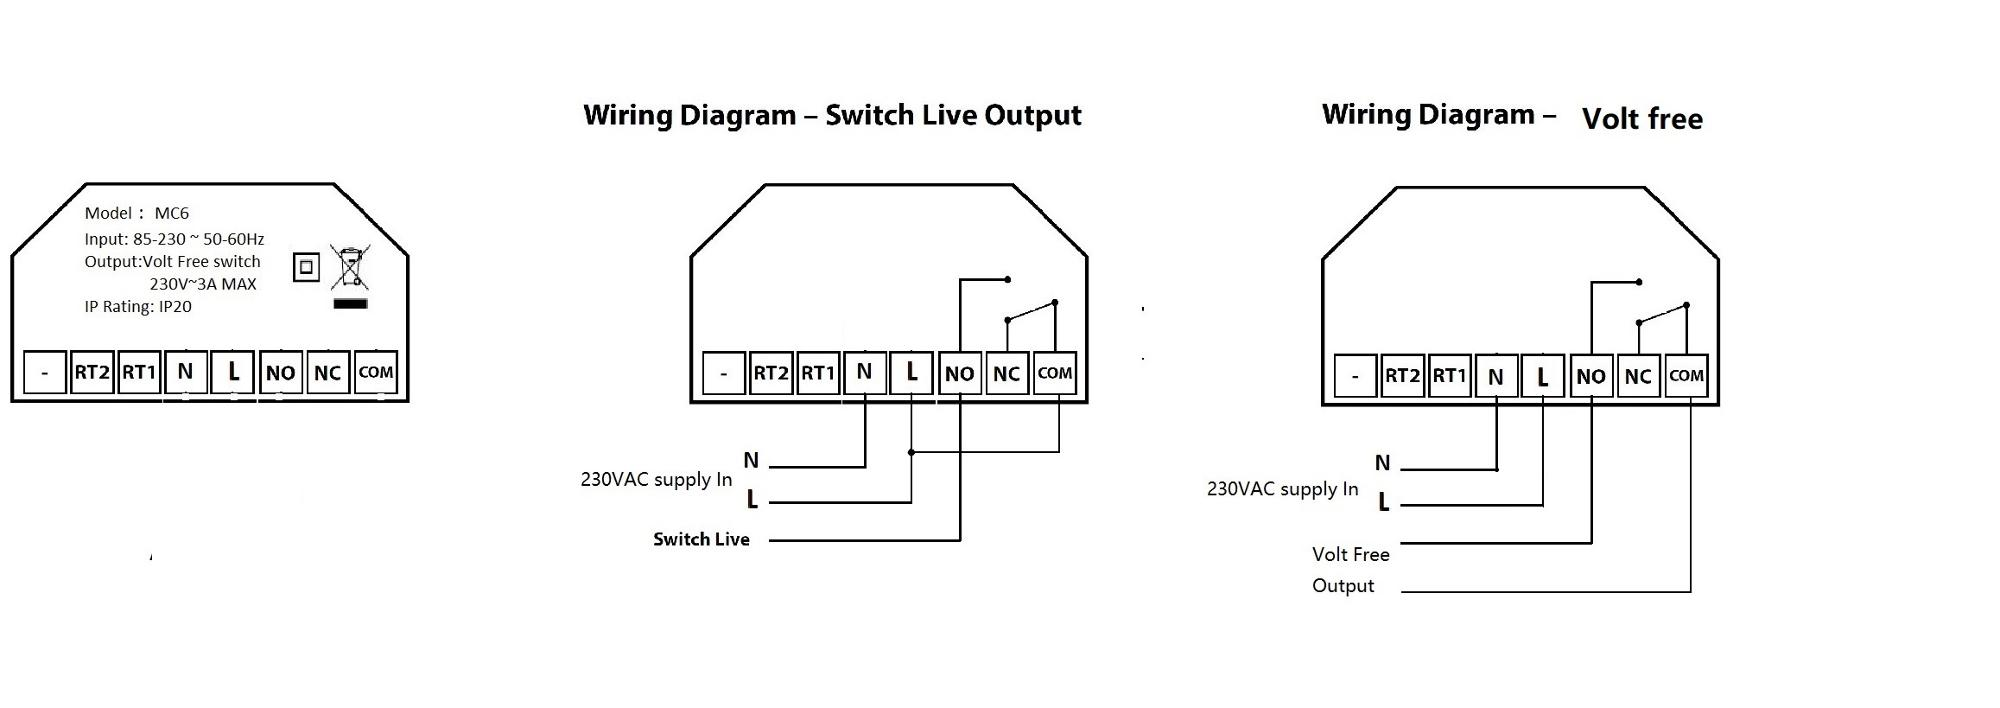 Heater Thermostat Wiring Free Download Wiring Diagrams Pictures